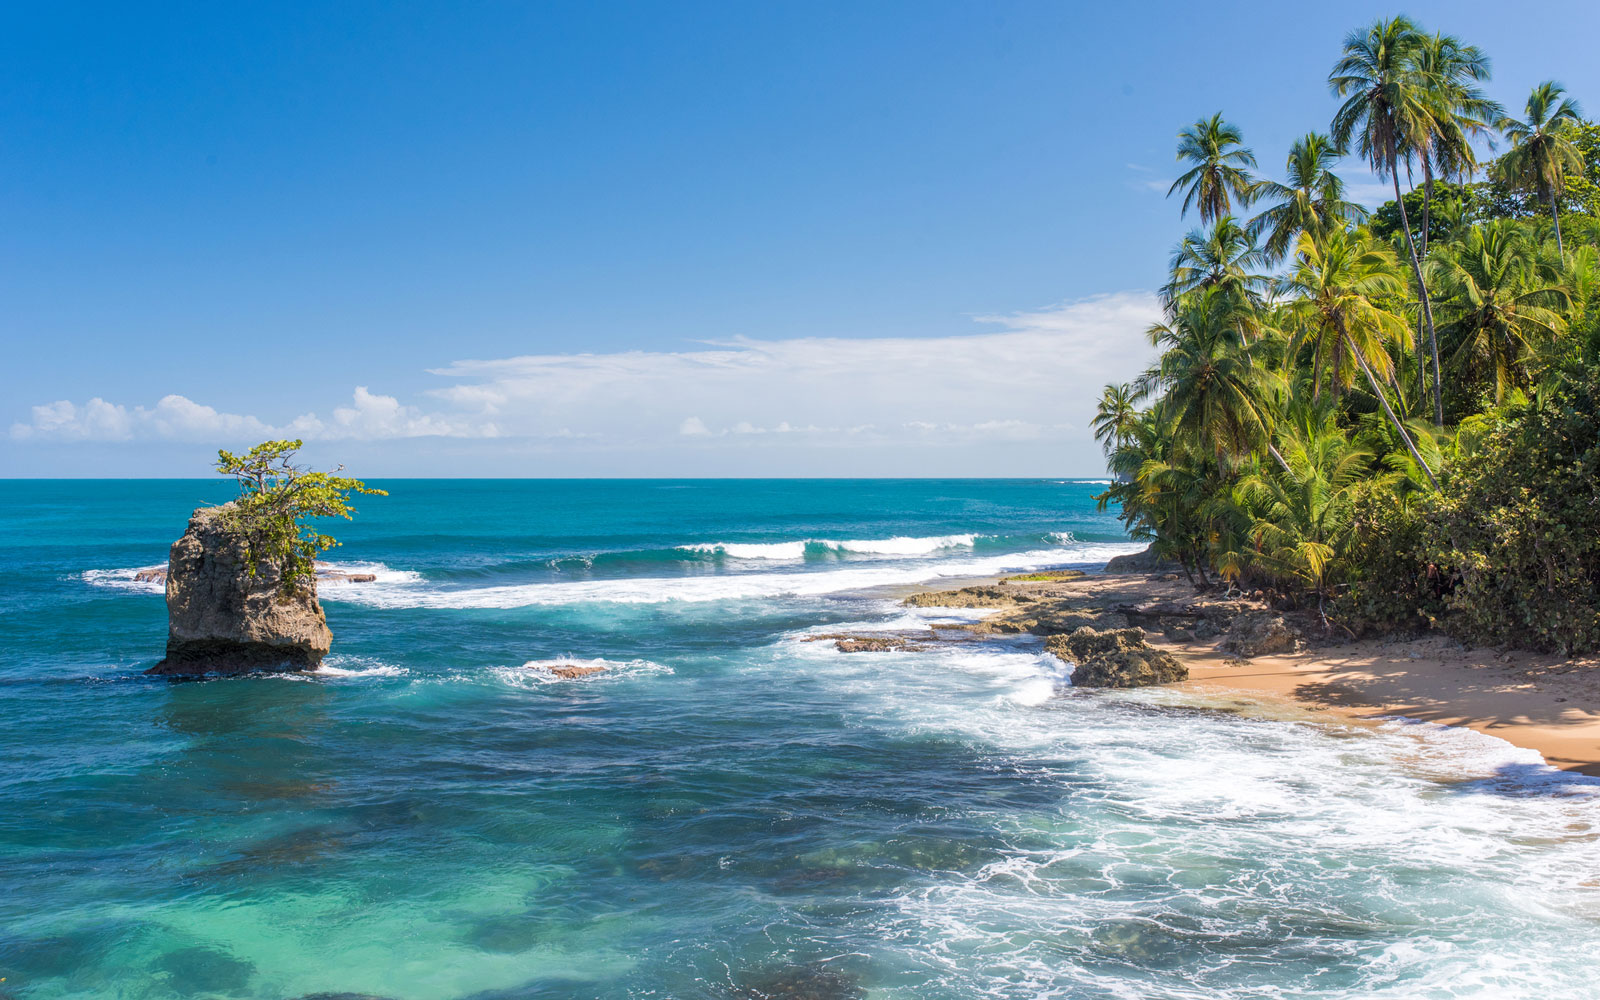 Pack your bags and keep your bank account intact, because here are some cheap vacation ideas to consider when planning your next trip.